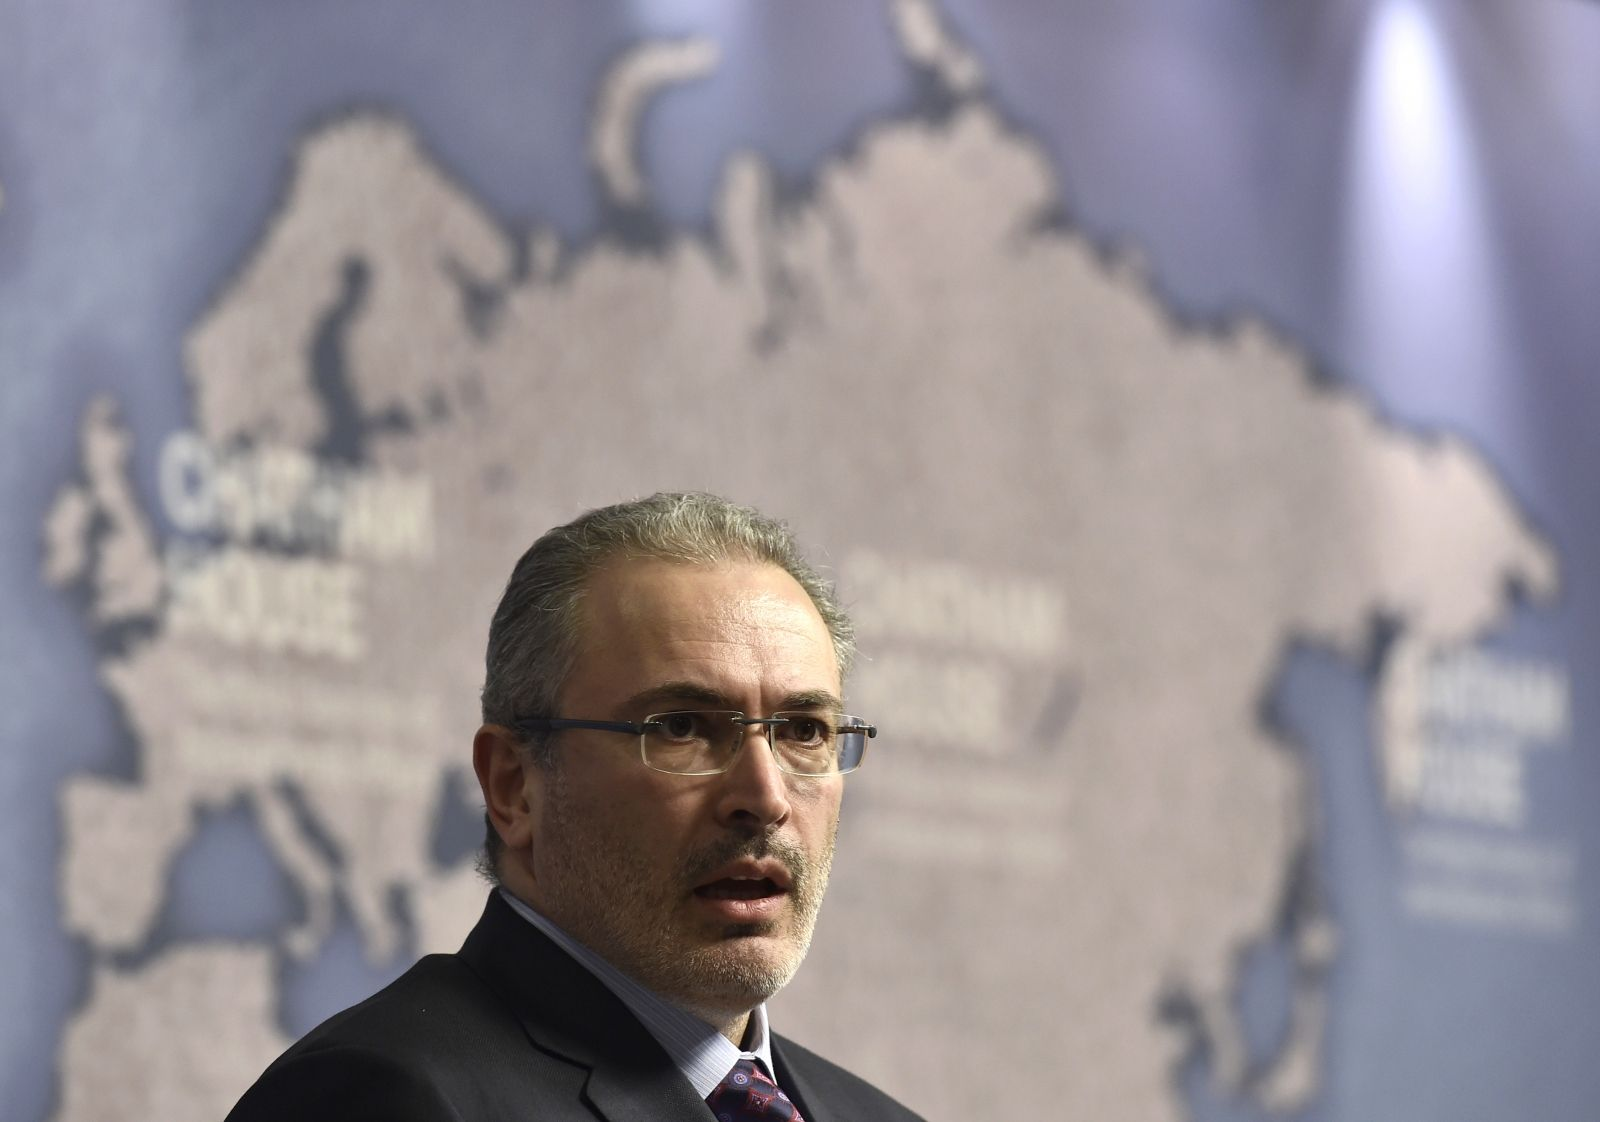 Khodorkovsky predicts end of Putin in 2019